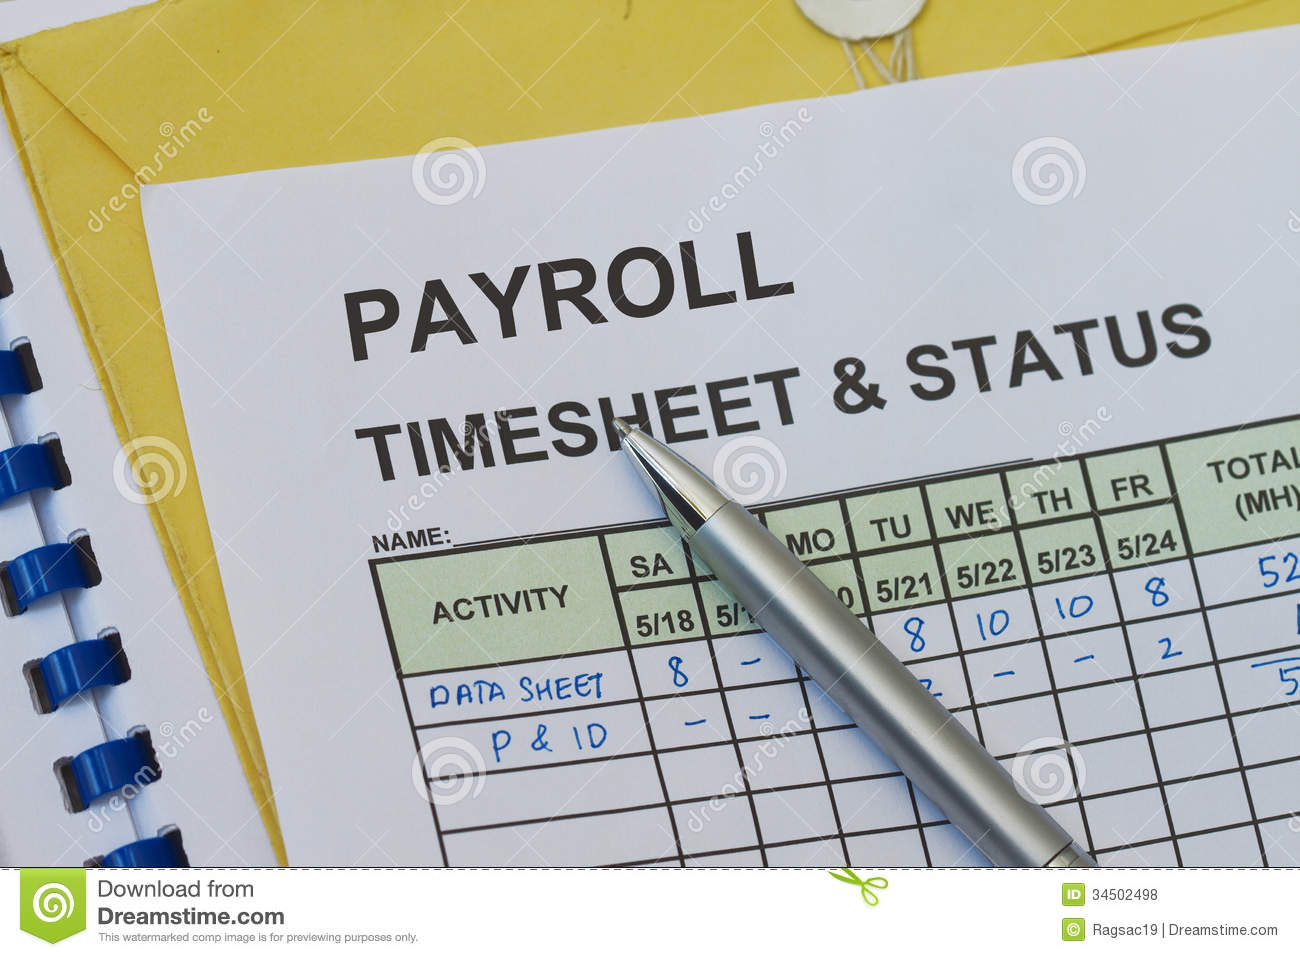 Payroll Weekly timesheet, with pen. Timekeeping record and payroll.